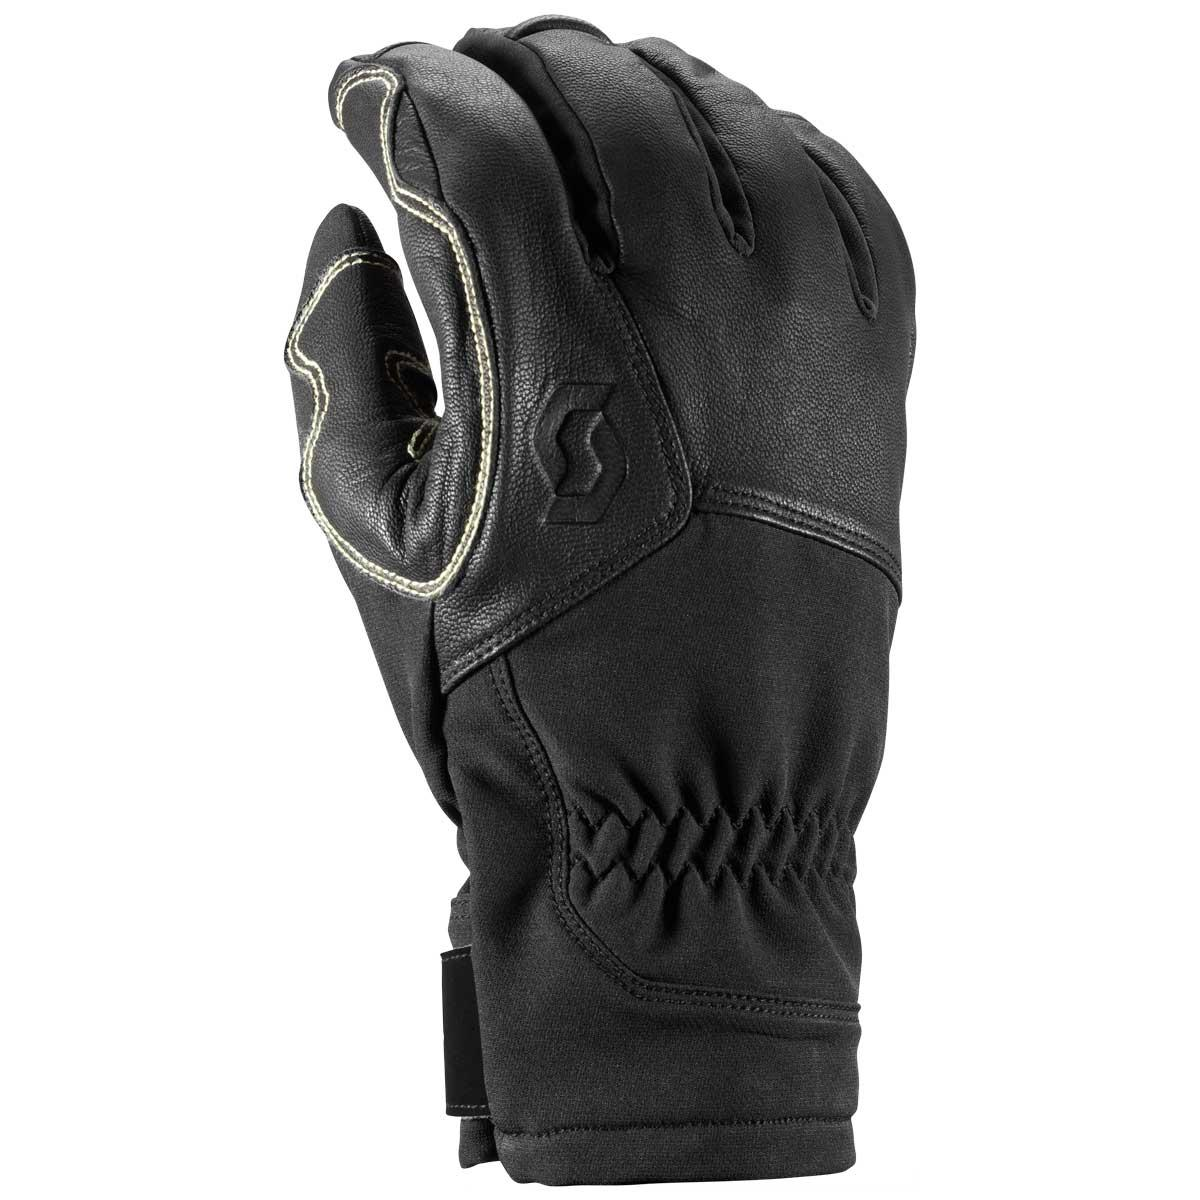 scott explorair tech glove in black